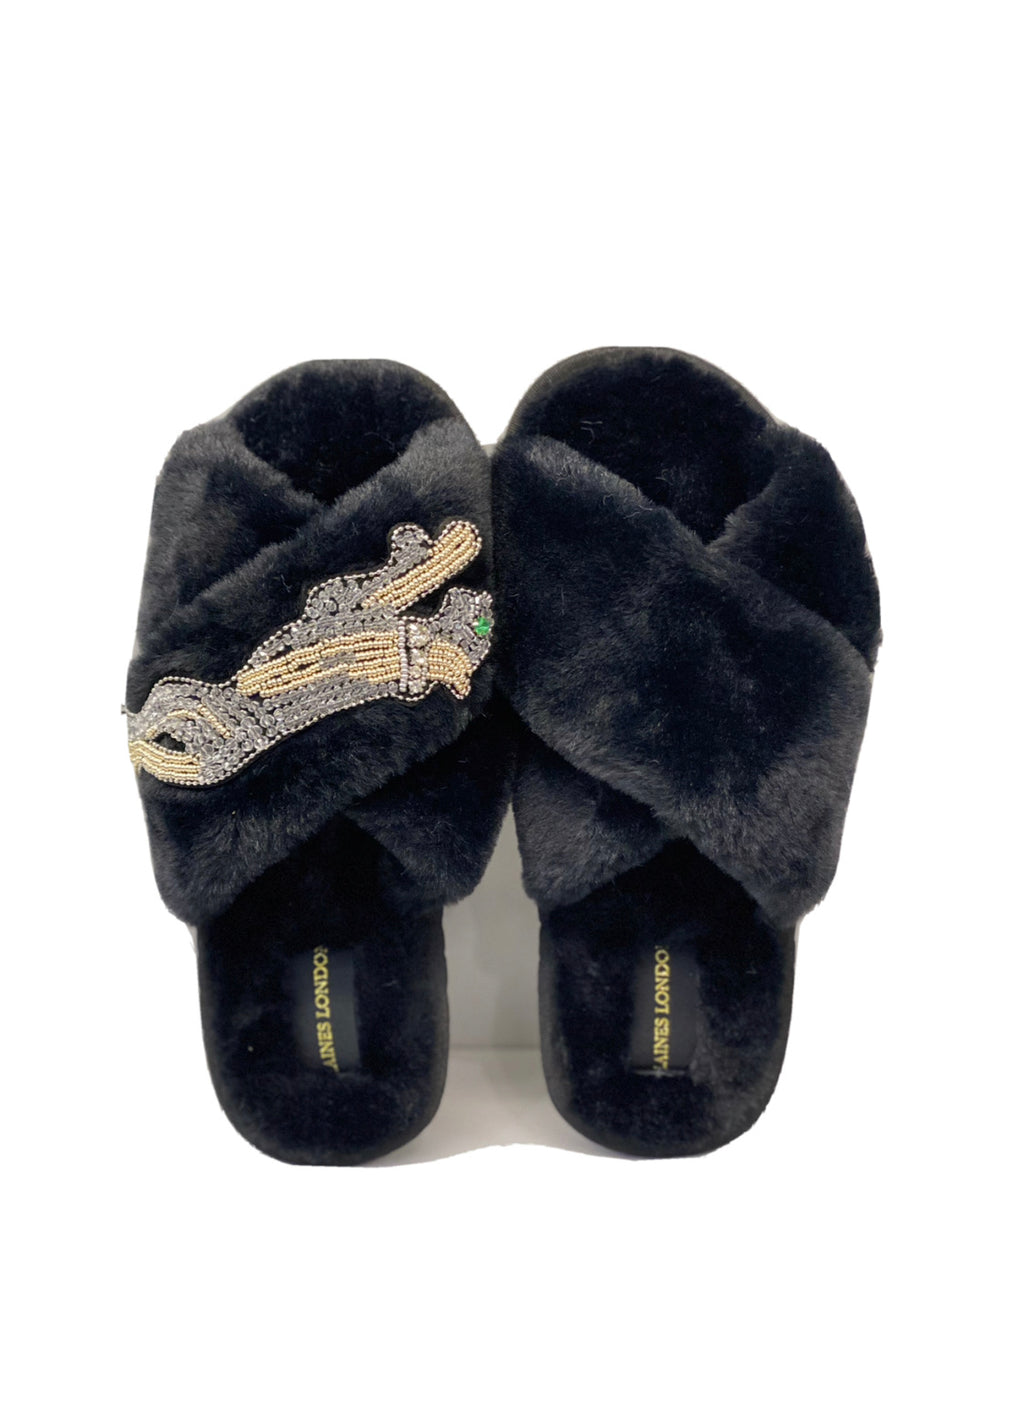 Platinum Panther On Fluffy Black Slipper